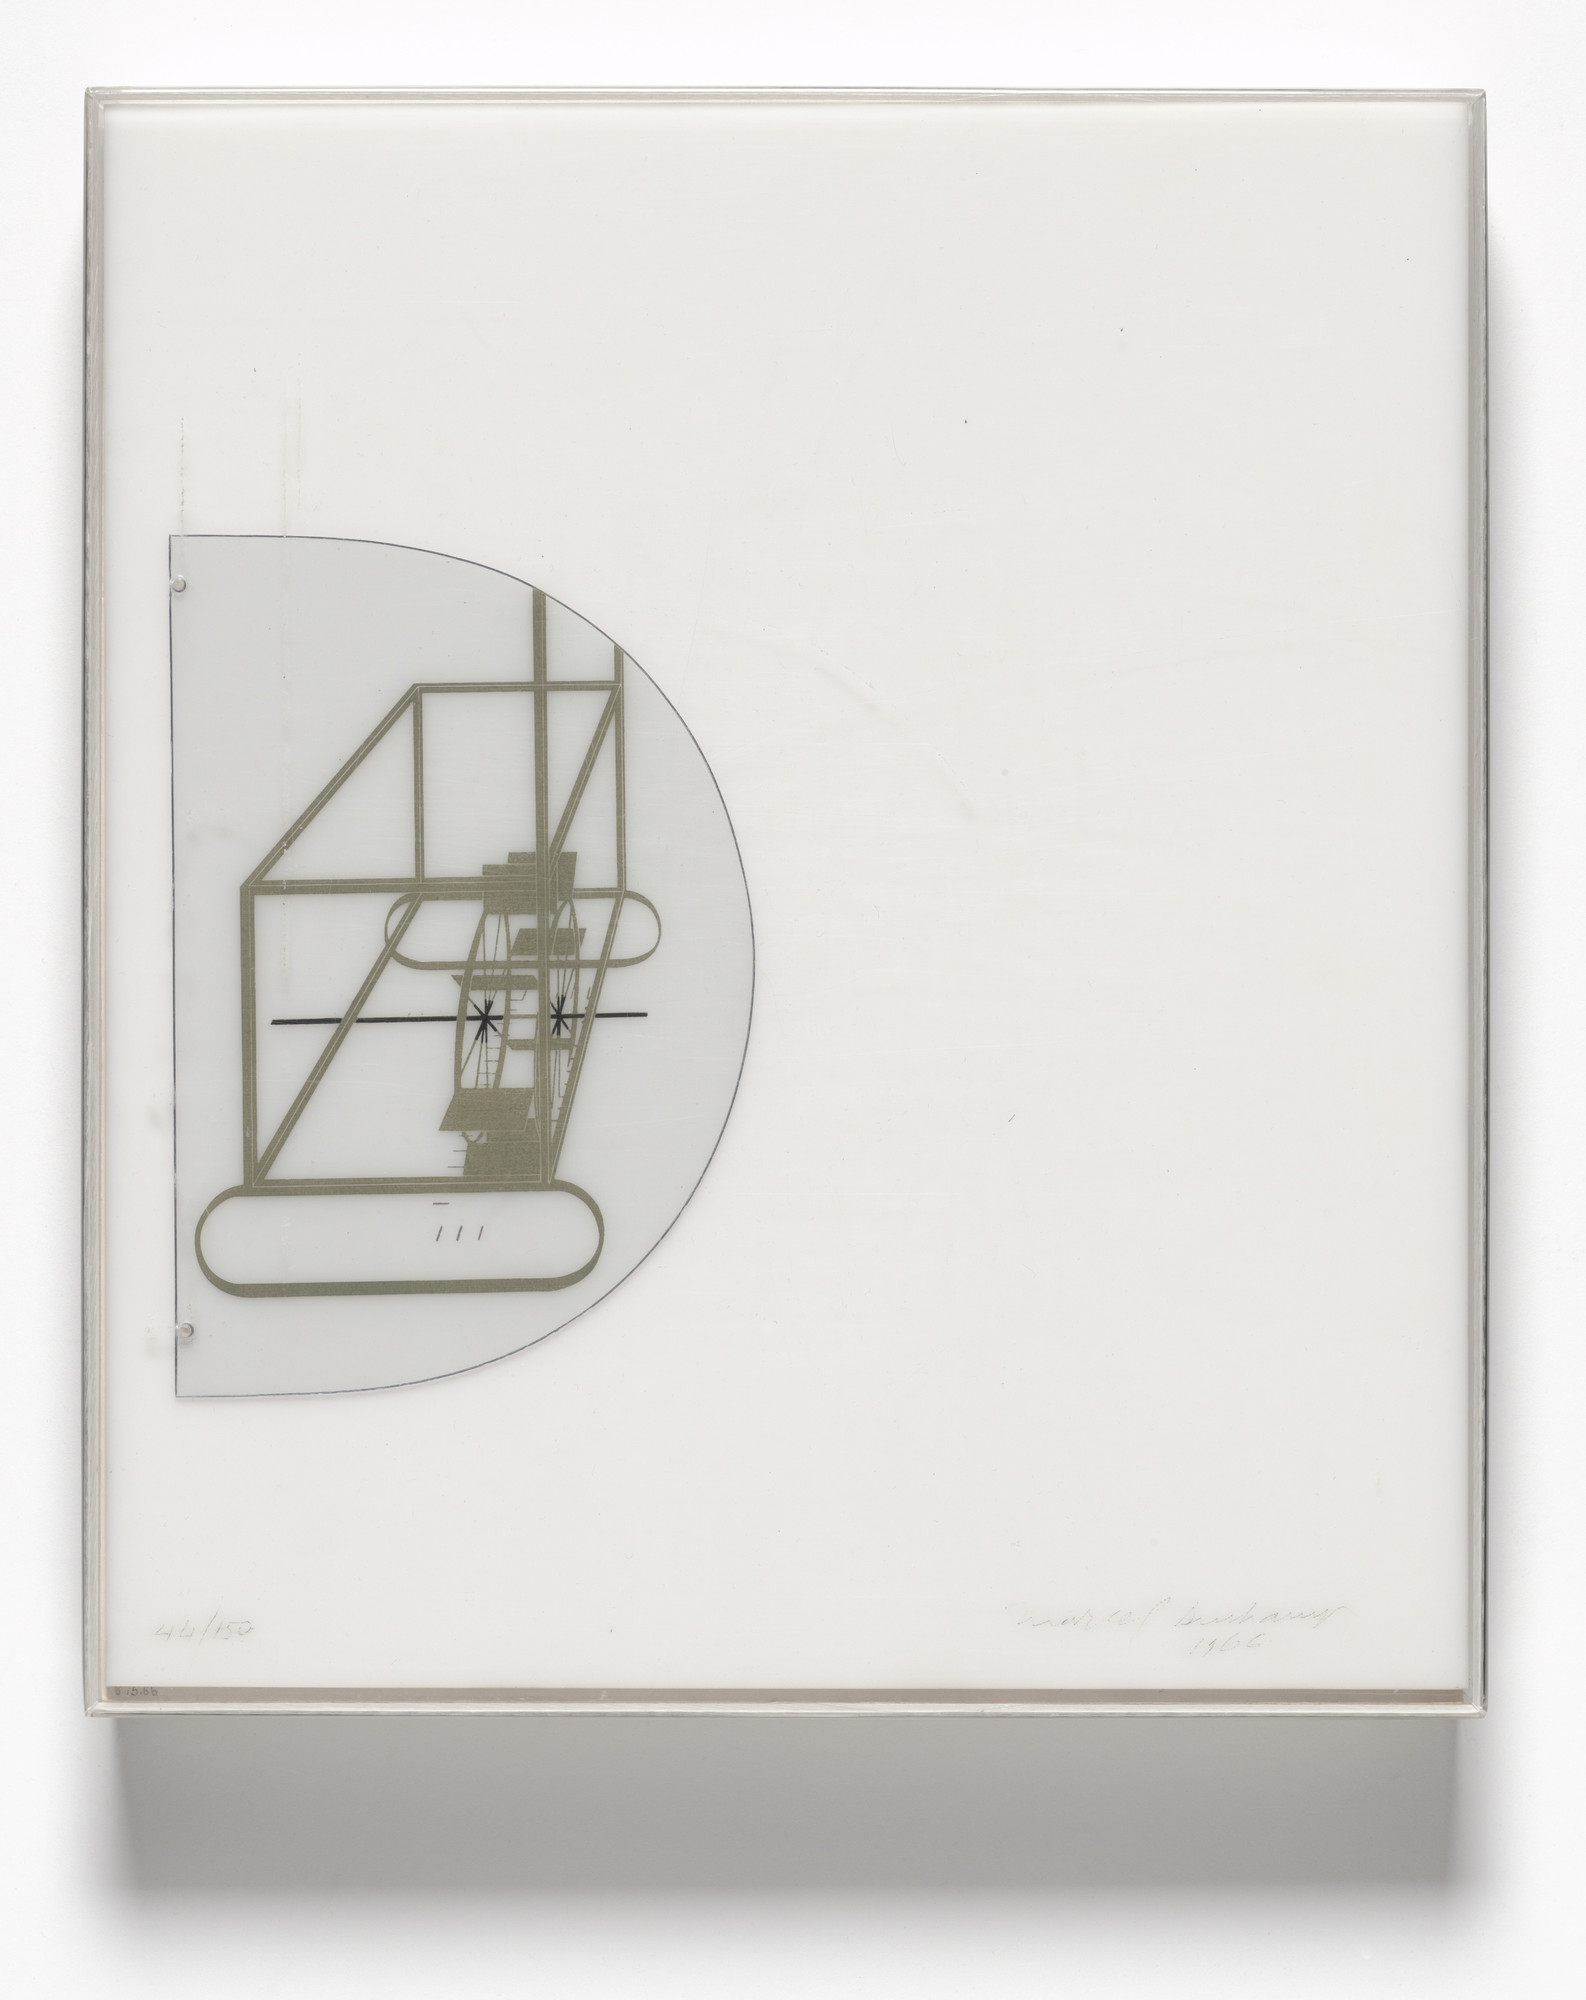 Marcel Duchamp. Cover for À l'Infinitif (La Boîte Blanche) (In the Infinitive [The White Box]). 1966